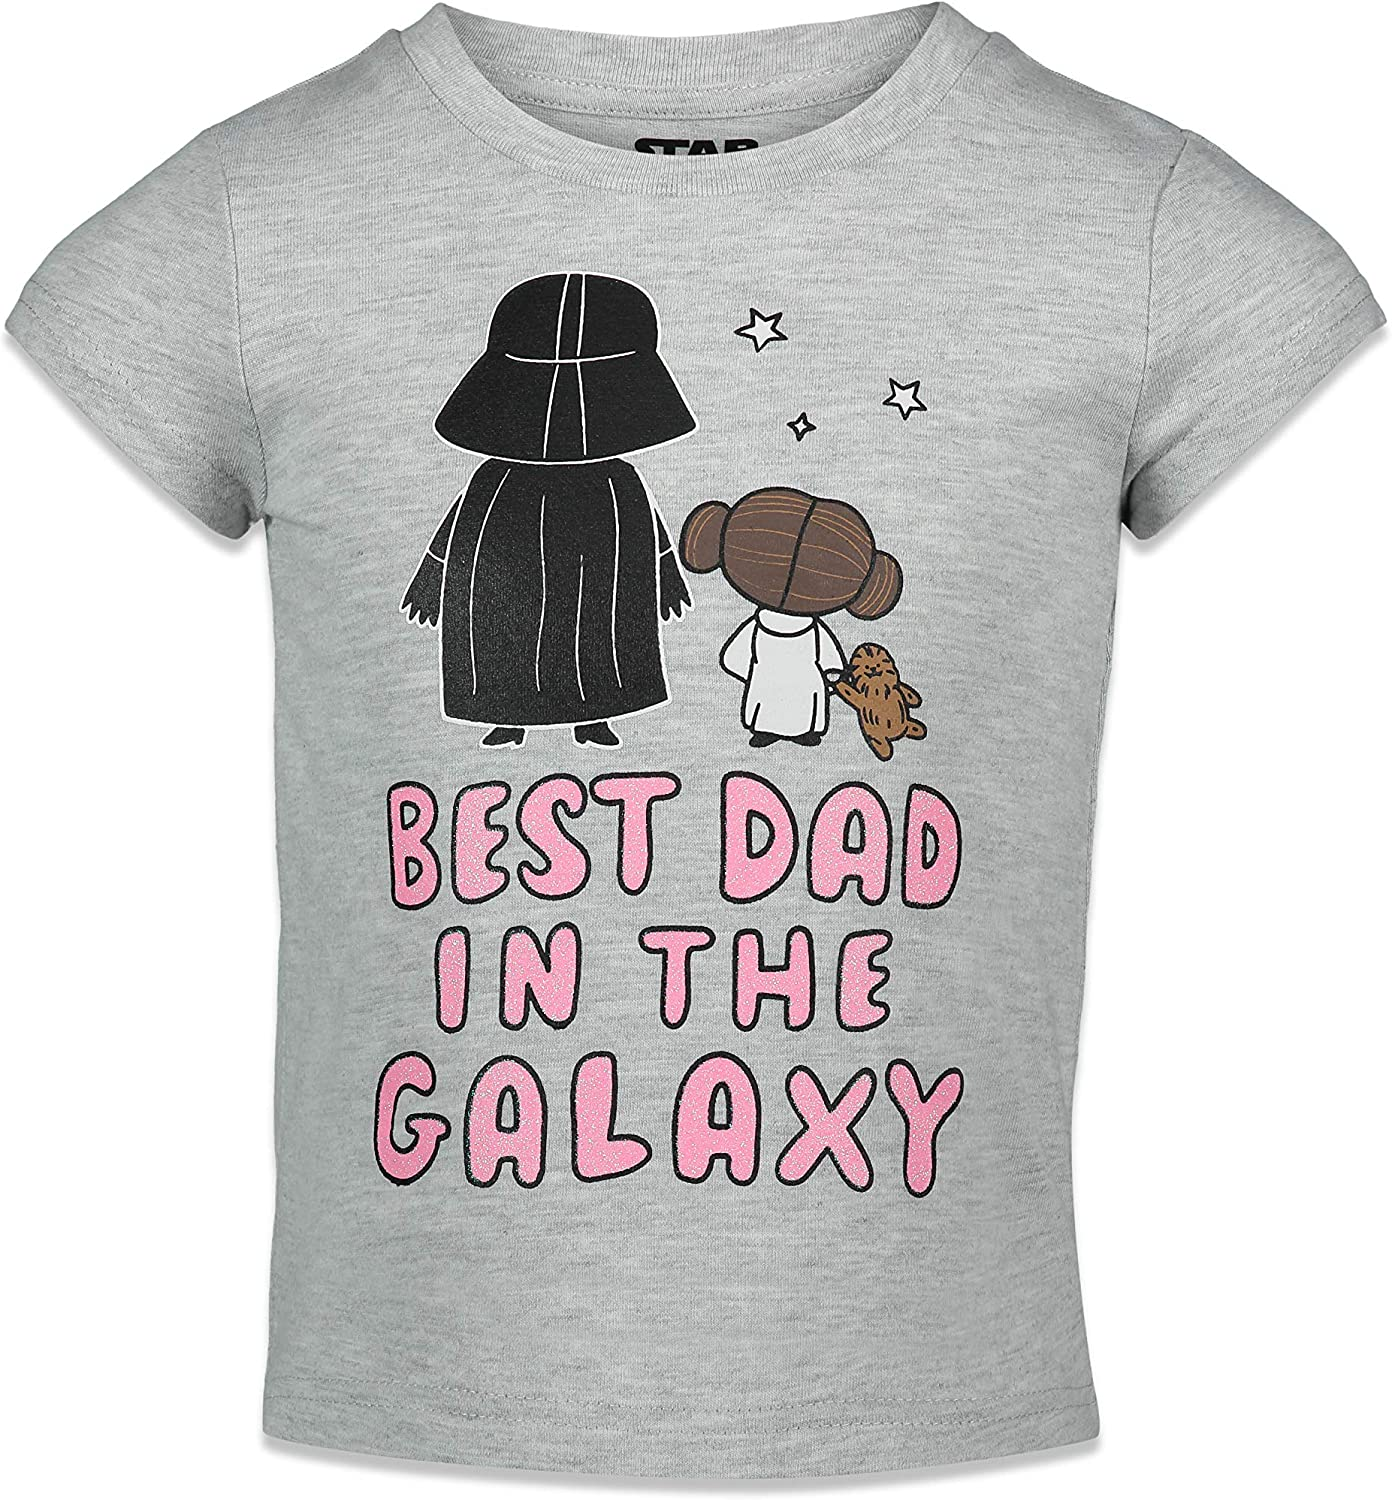 Easy-to-use STAR WARS Darth Complete Free Shipping Vader Princess Leia Girls Sleeve Graphic T Short